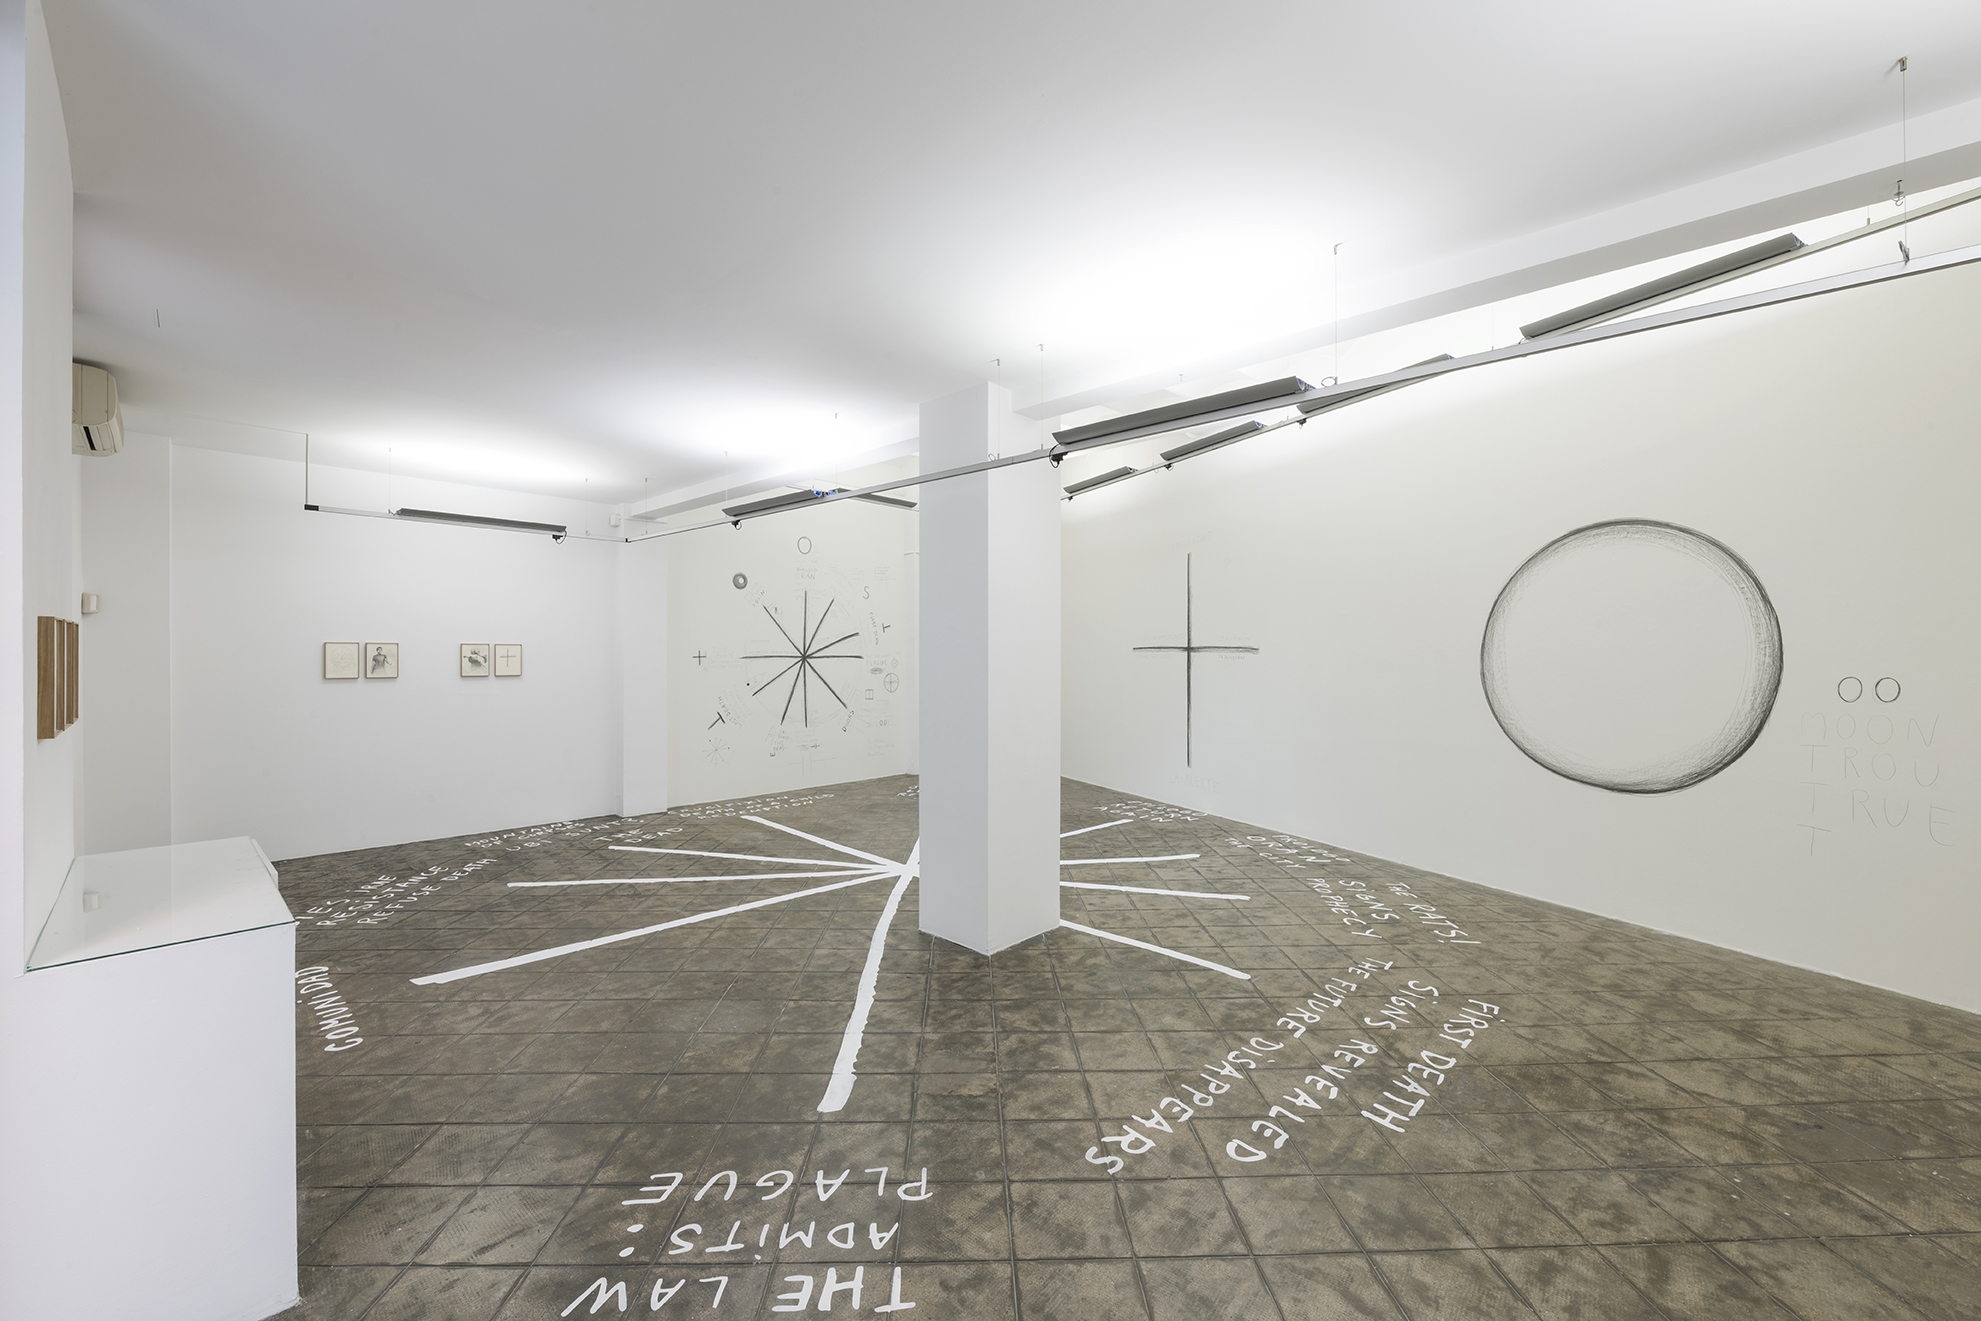 Installation view: La Peste, ProjecteSD | La Peste (The Plague) | ProjecteSD